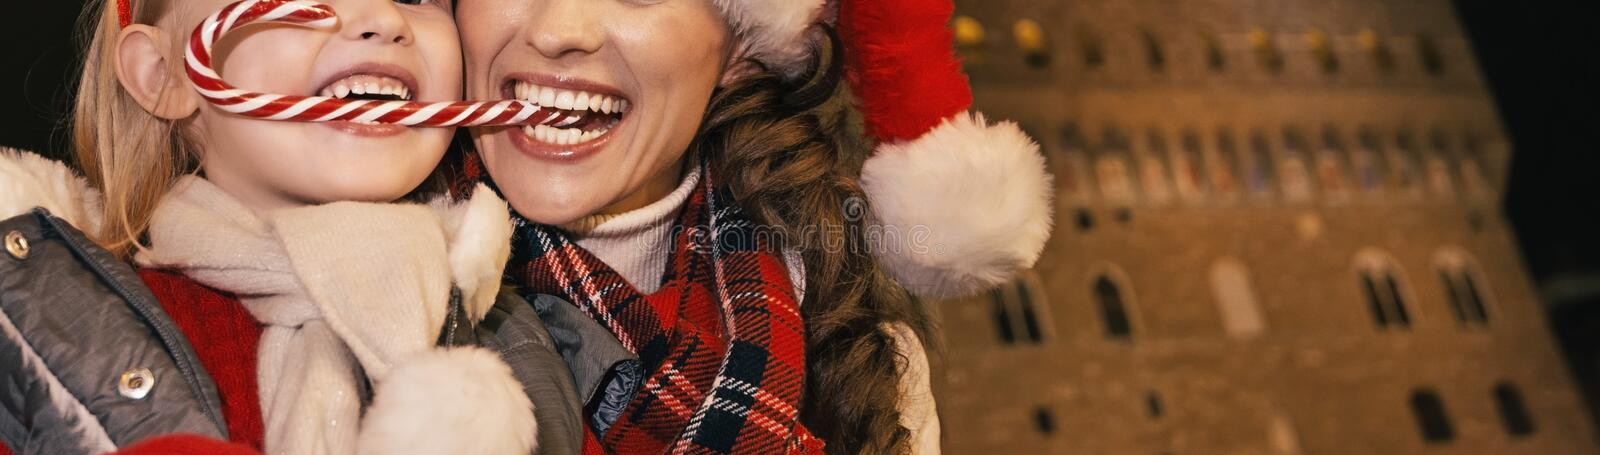 Mother and child eating Christmas candy cane in Florence, Italy royalty free stock images